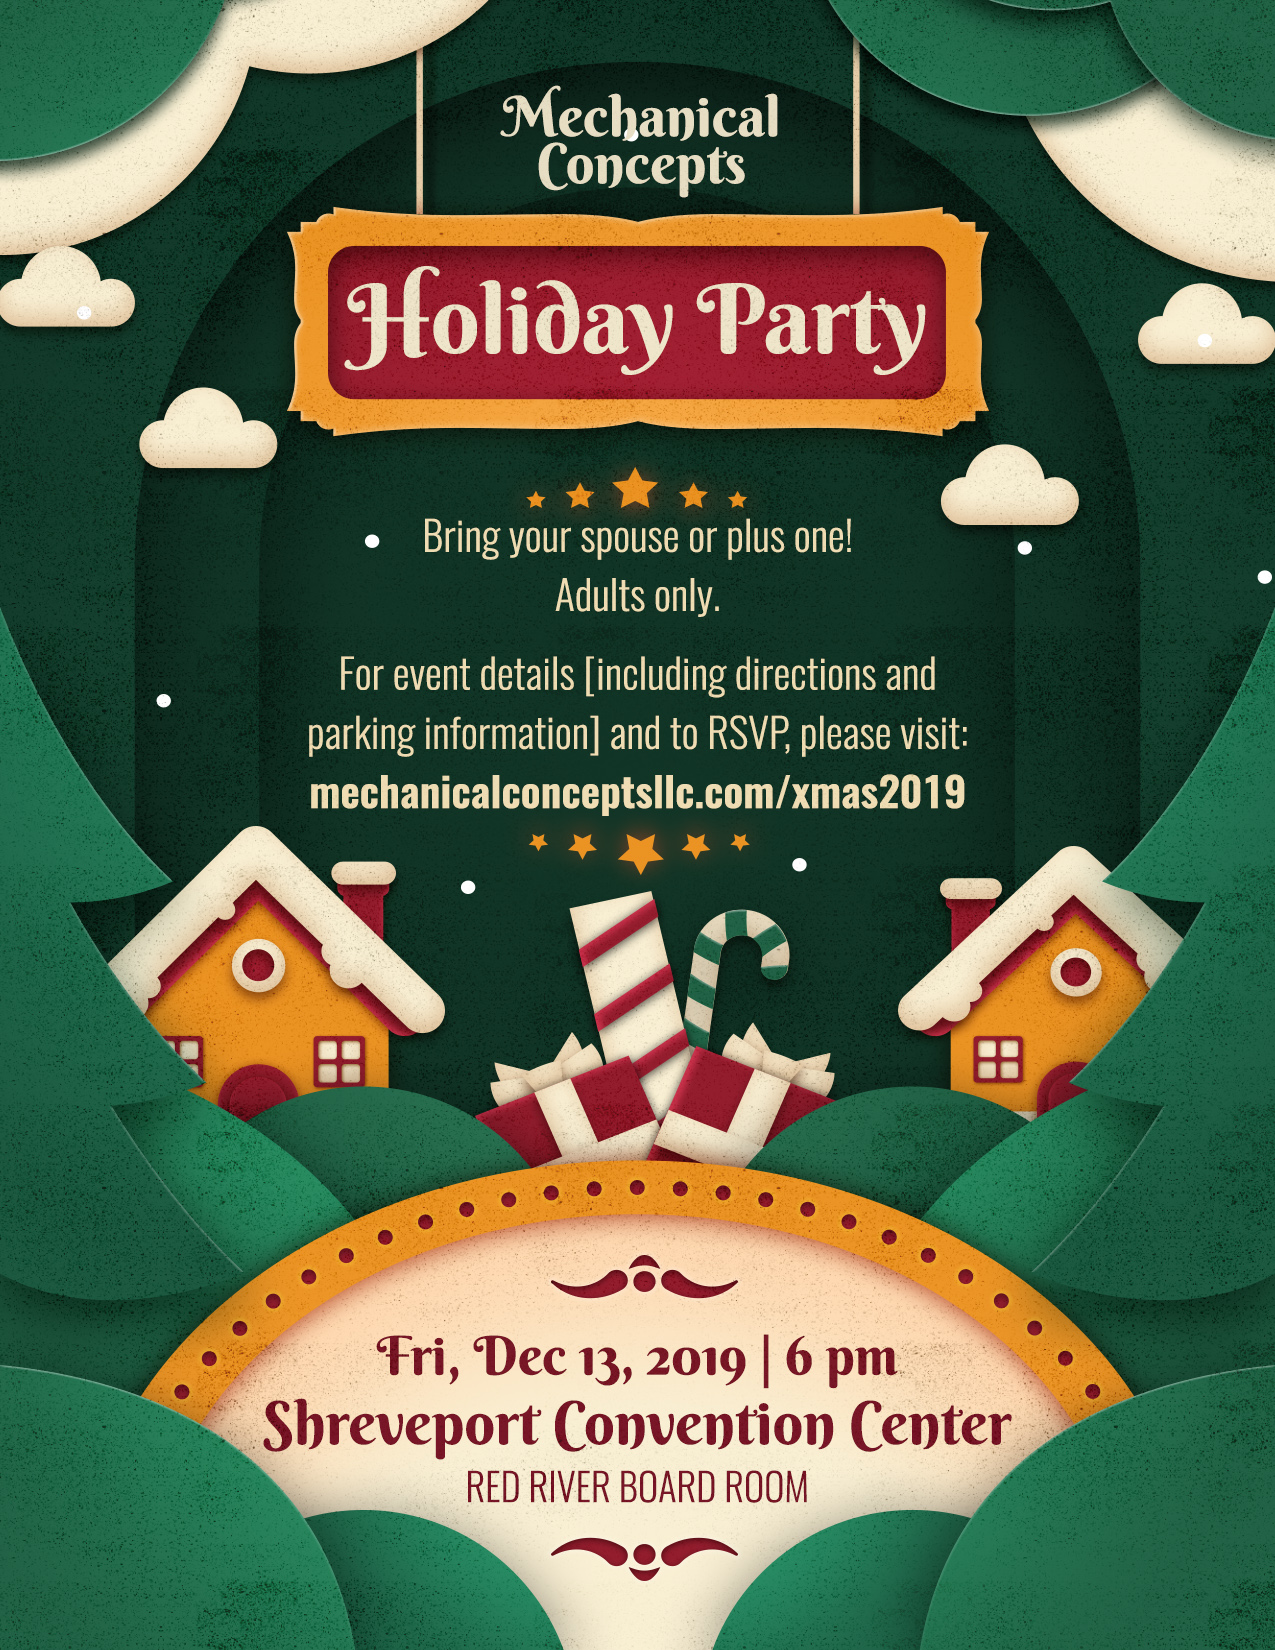 Mechanical Concepts Team Holiday Party @ Shreveport Convention Center